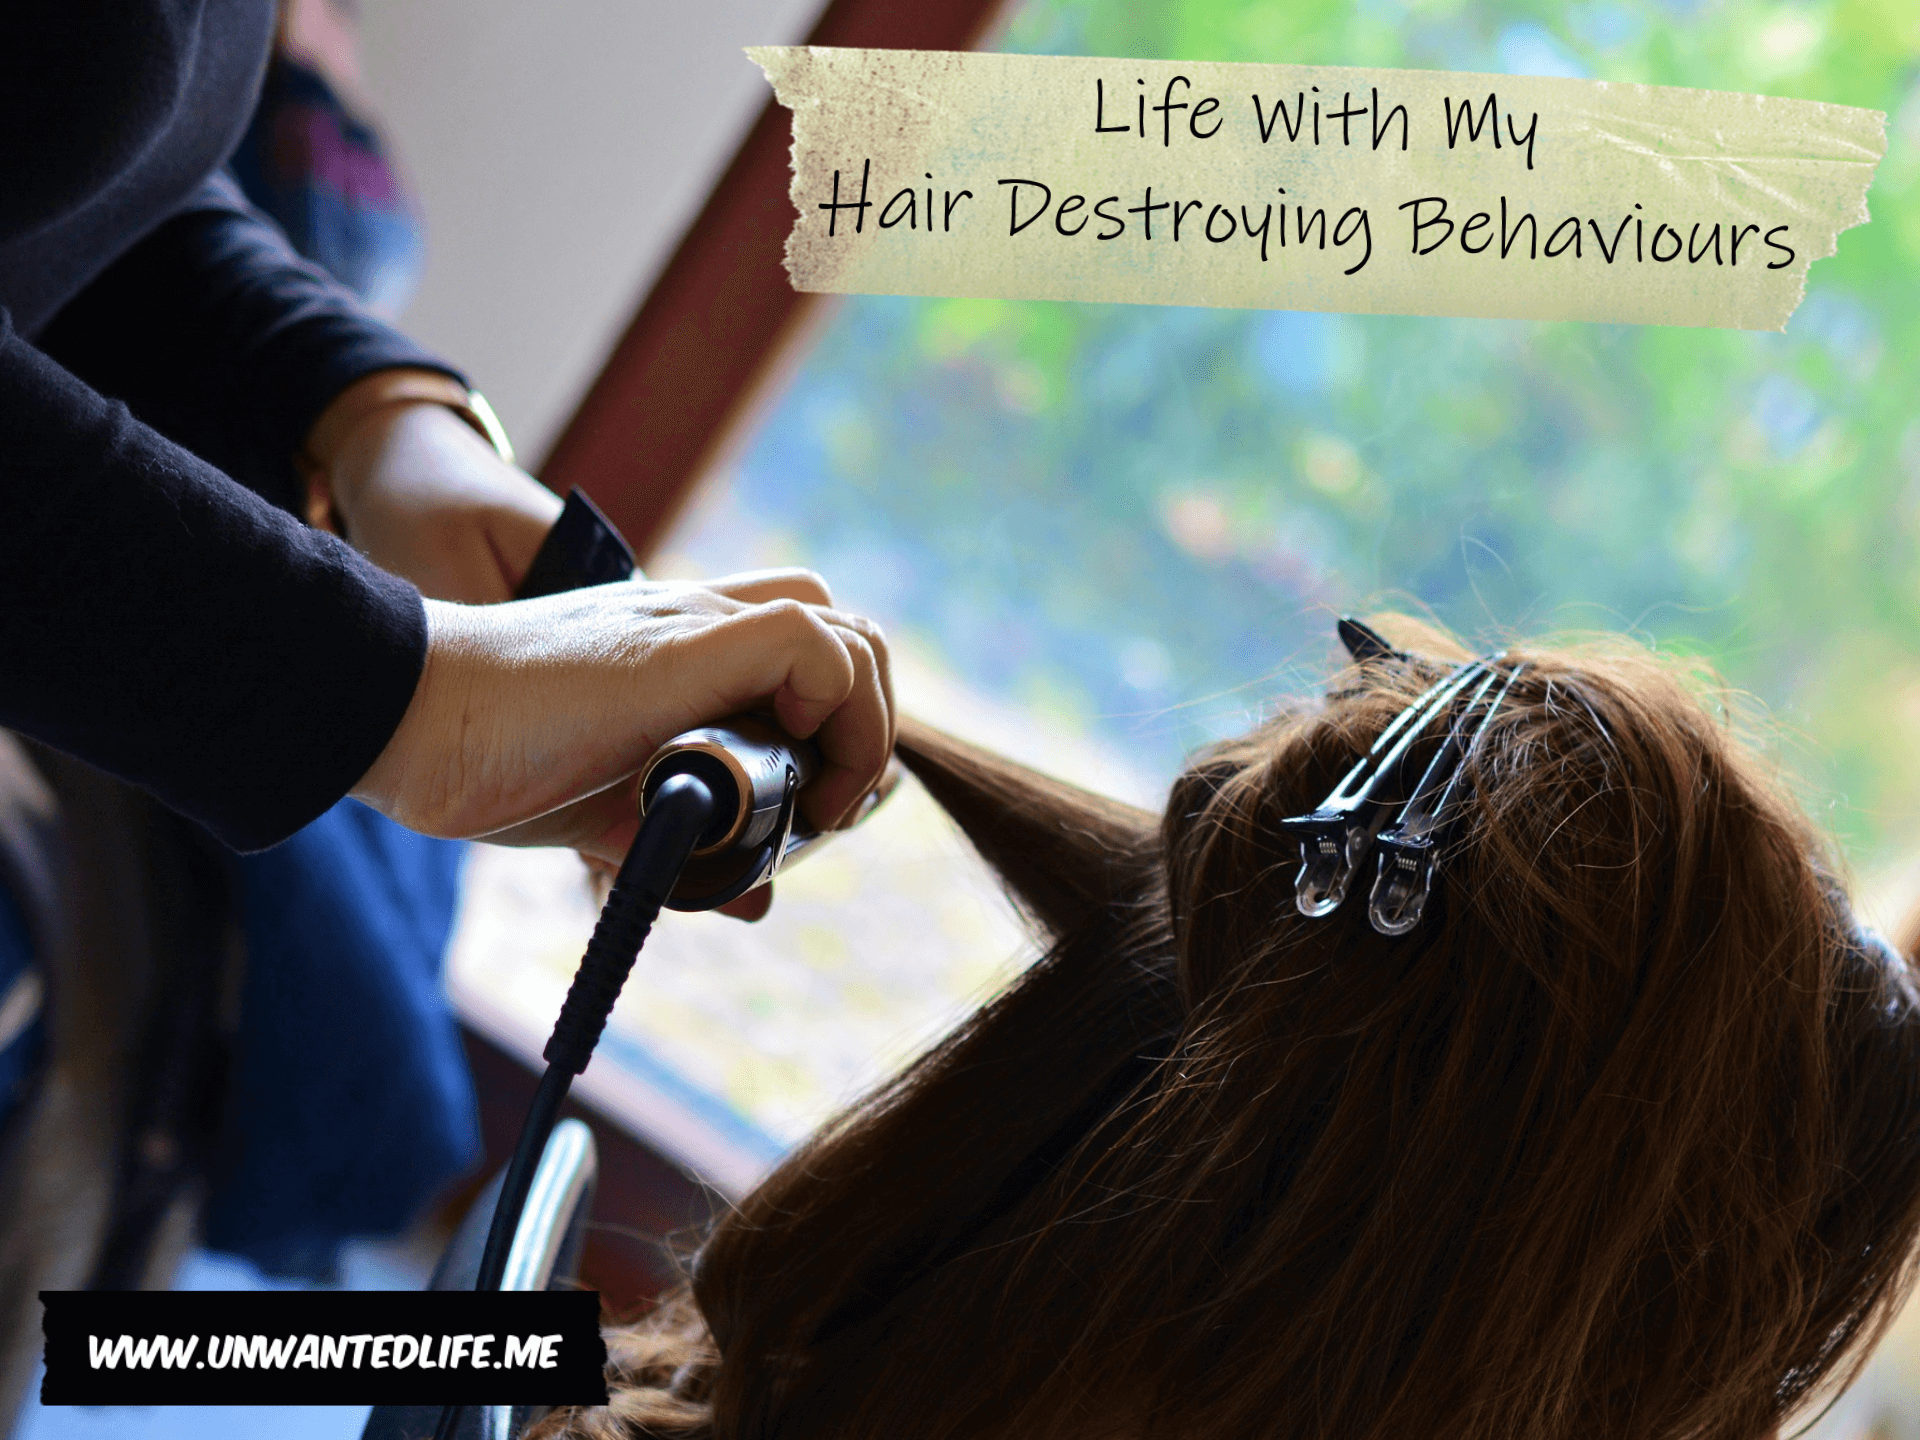 A photo of a woman getting her hair straightened with the article title - Life With My Hair Destroying Behaviours - in the top right corner